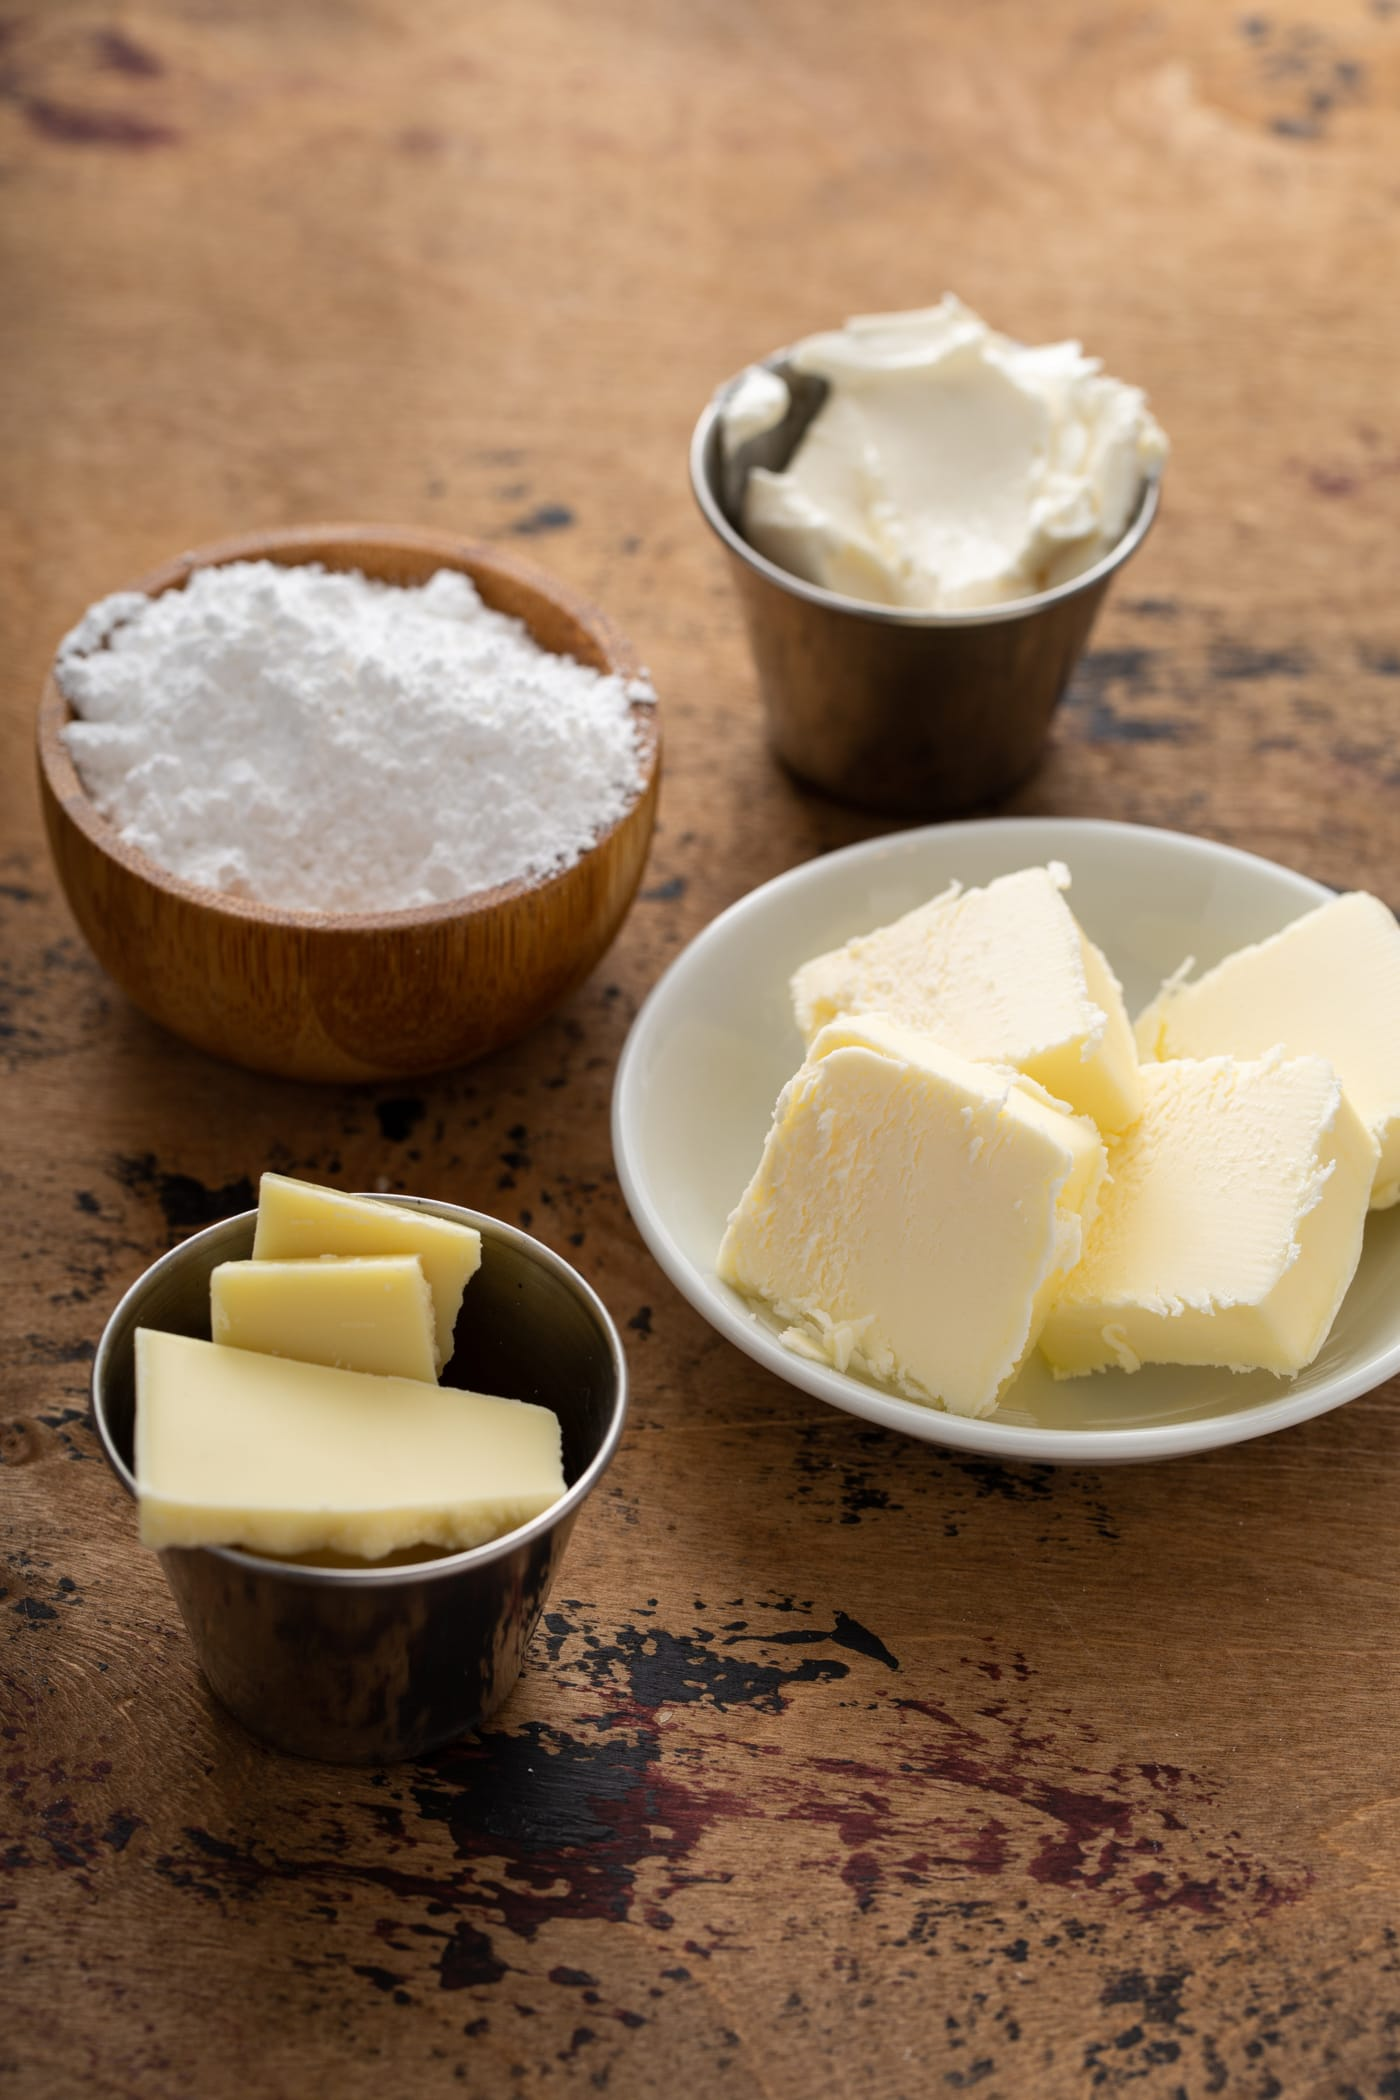 Containers of slices of butter, powdered sugar, cream cheese and white chocolate.